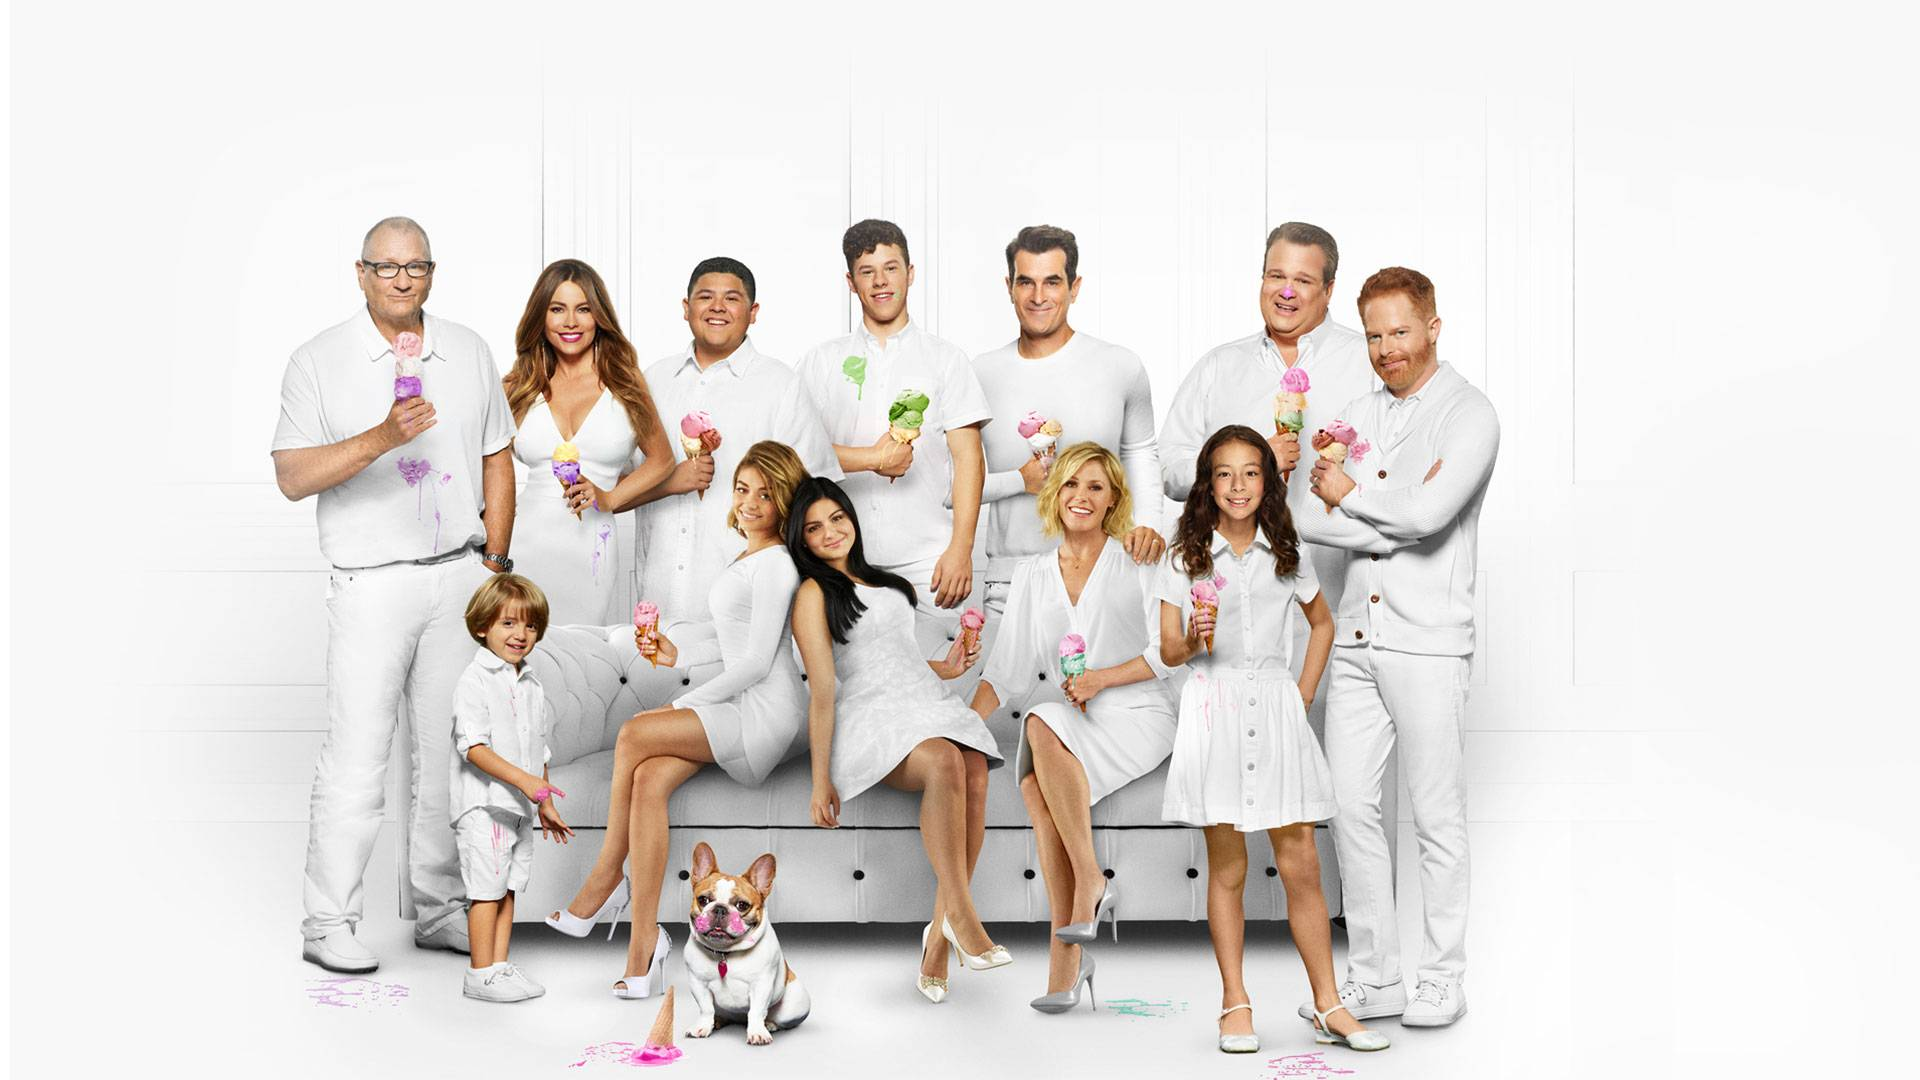 Comedy Central Modern Family